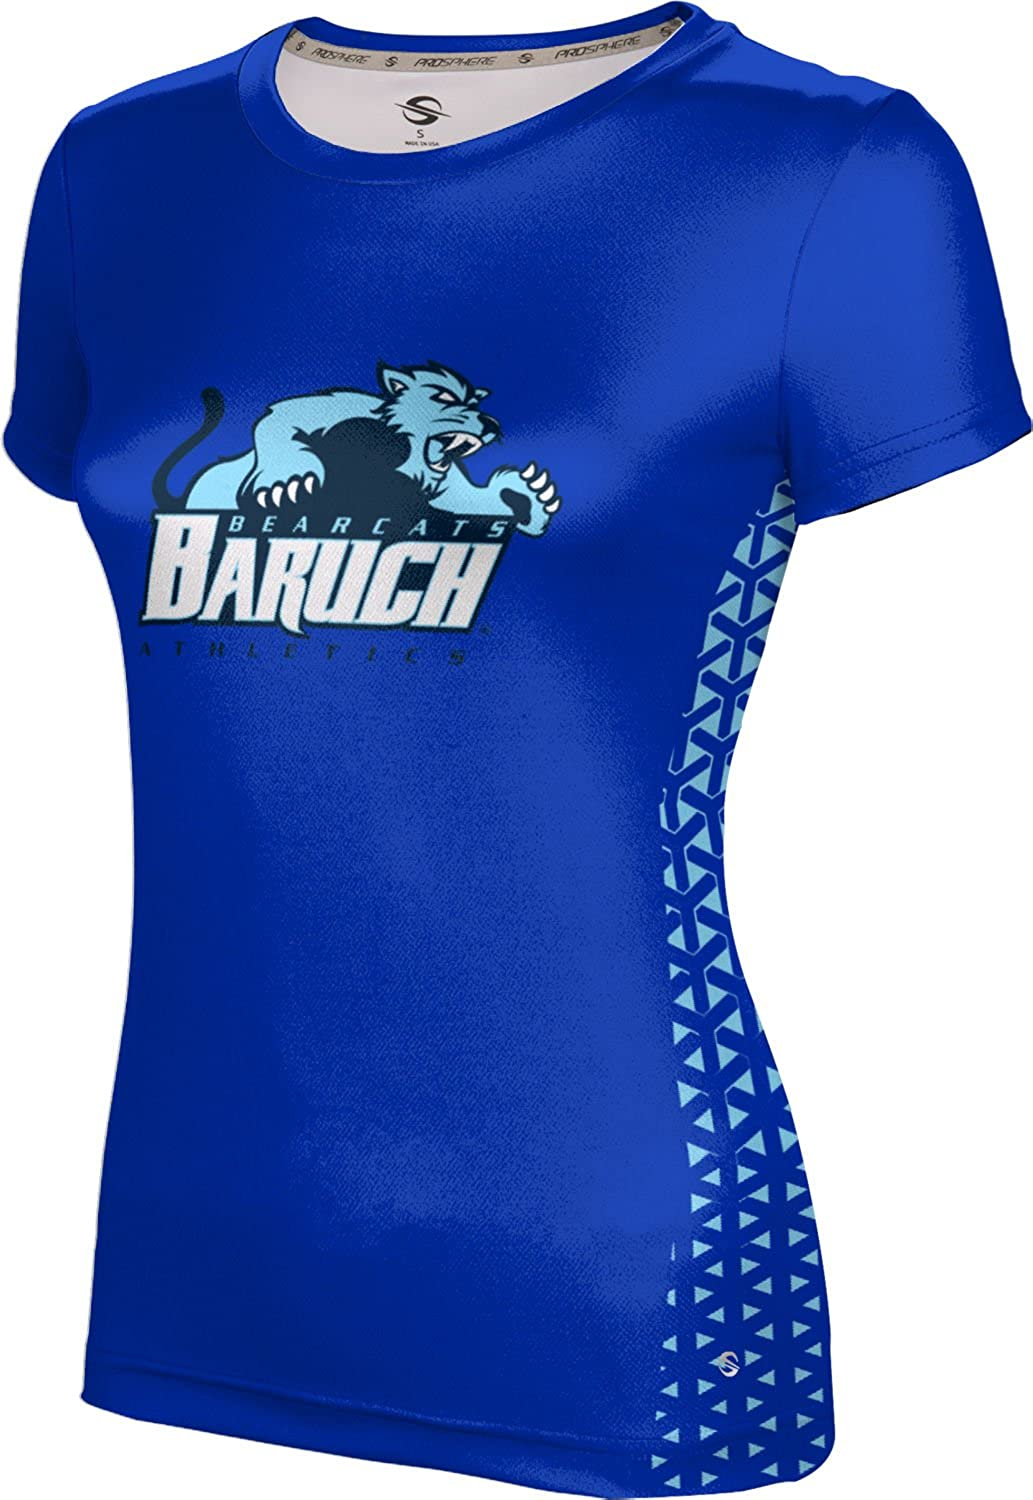 ProSphere Women's Baruch College Geometric Tech Tee